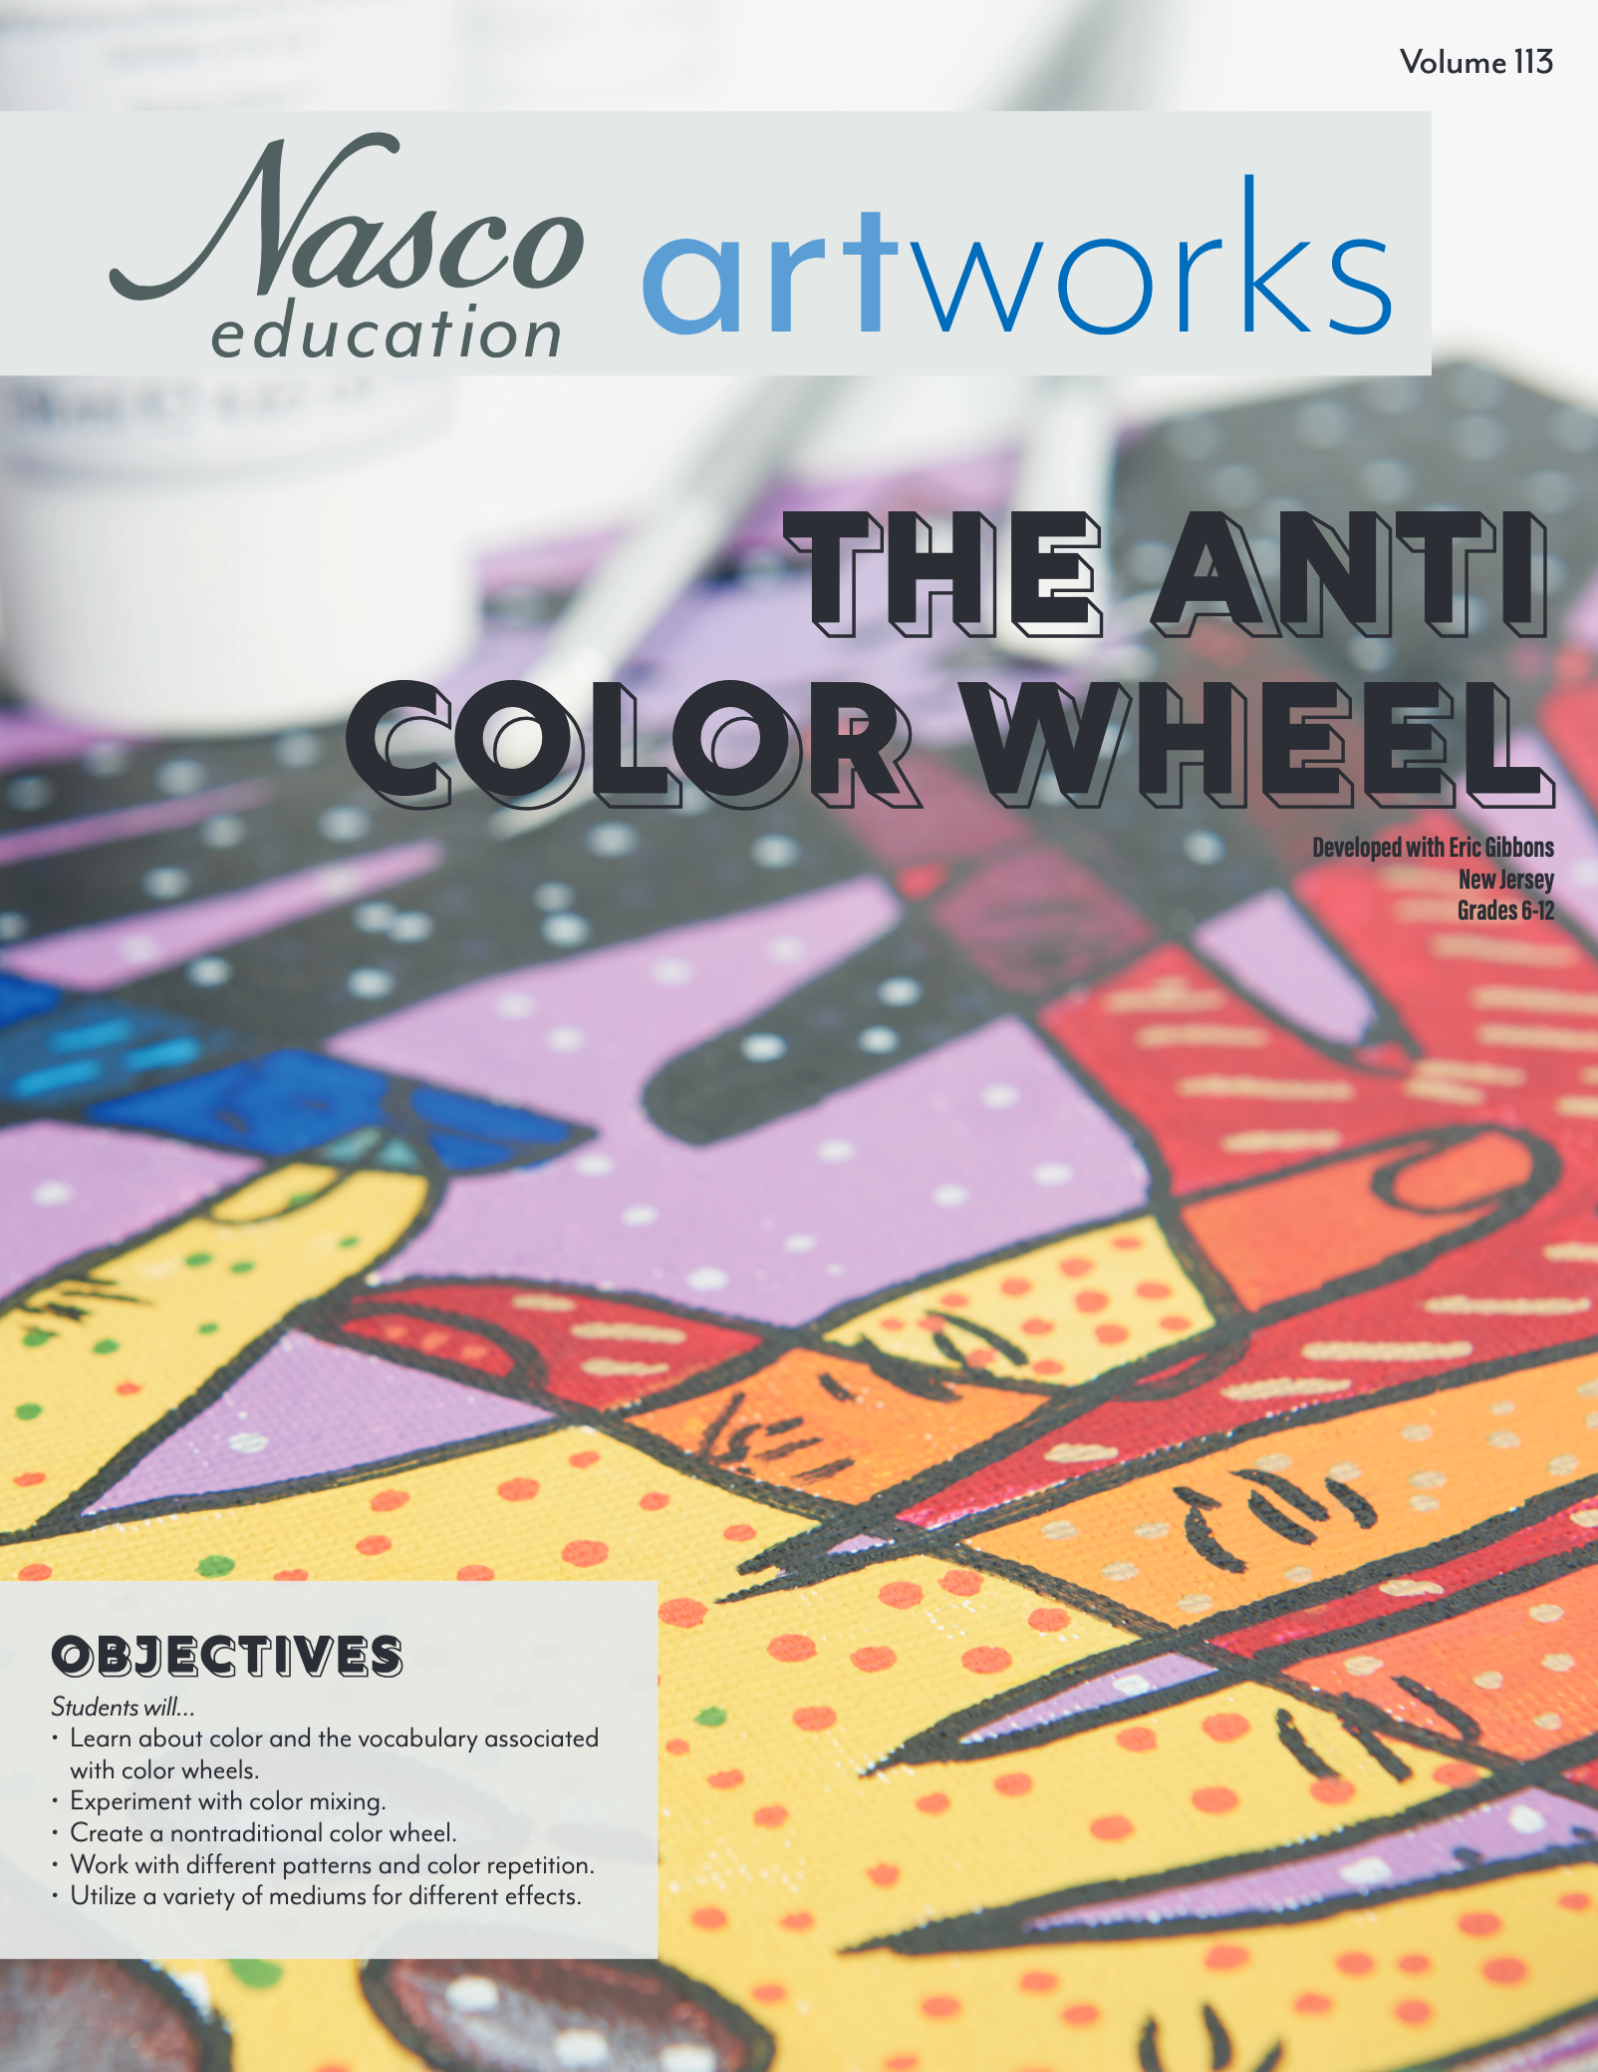 Create A Nontraditional Color Wheel Work With Different